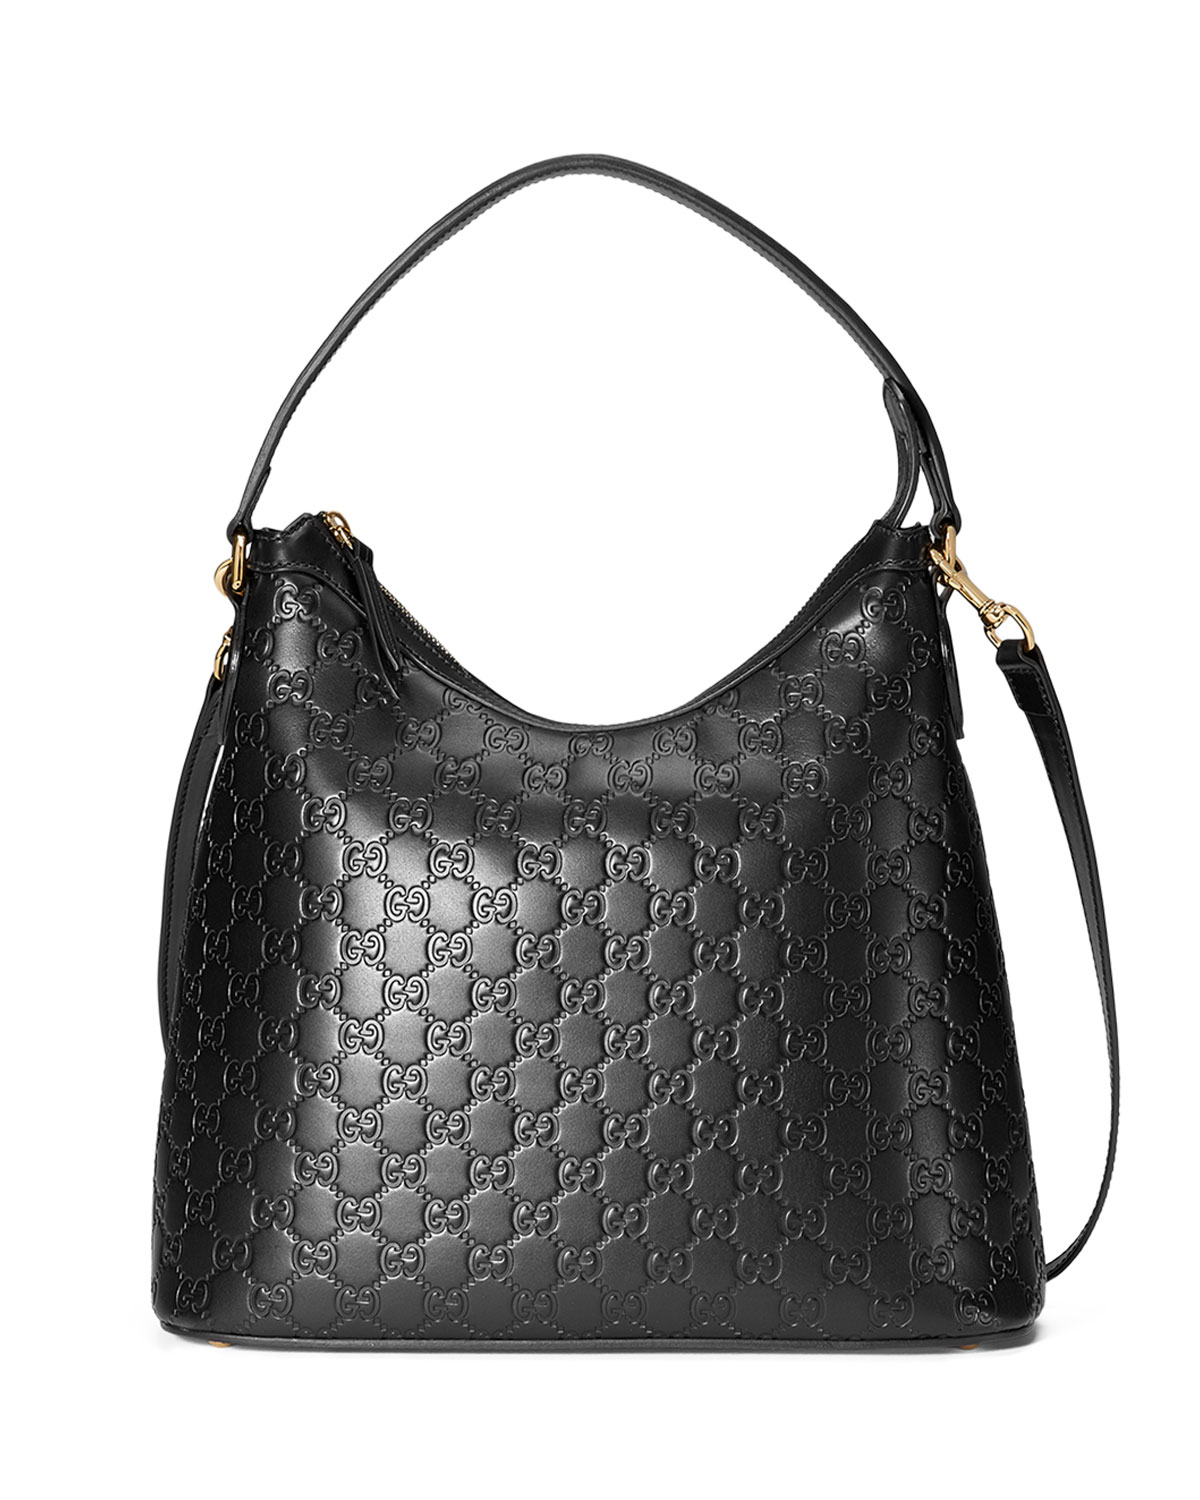 4f49025aca28 Gucci Guccissima Medium Hobo Bag, Black | Neiman Marcus